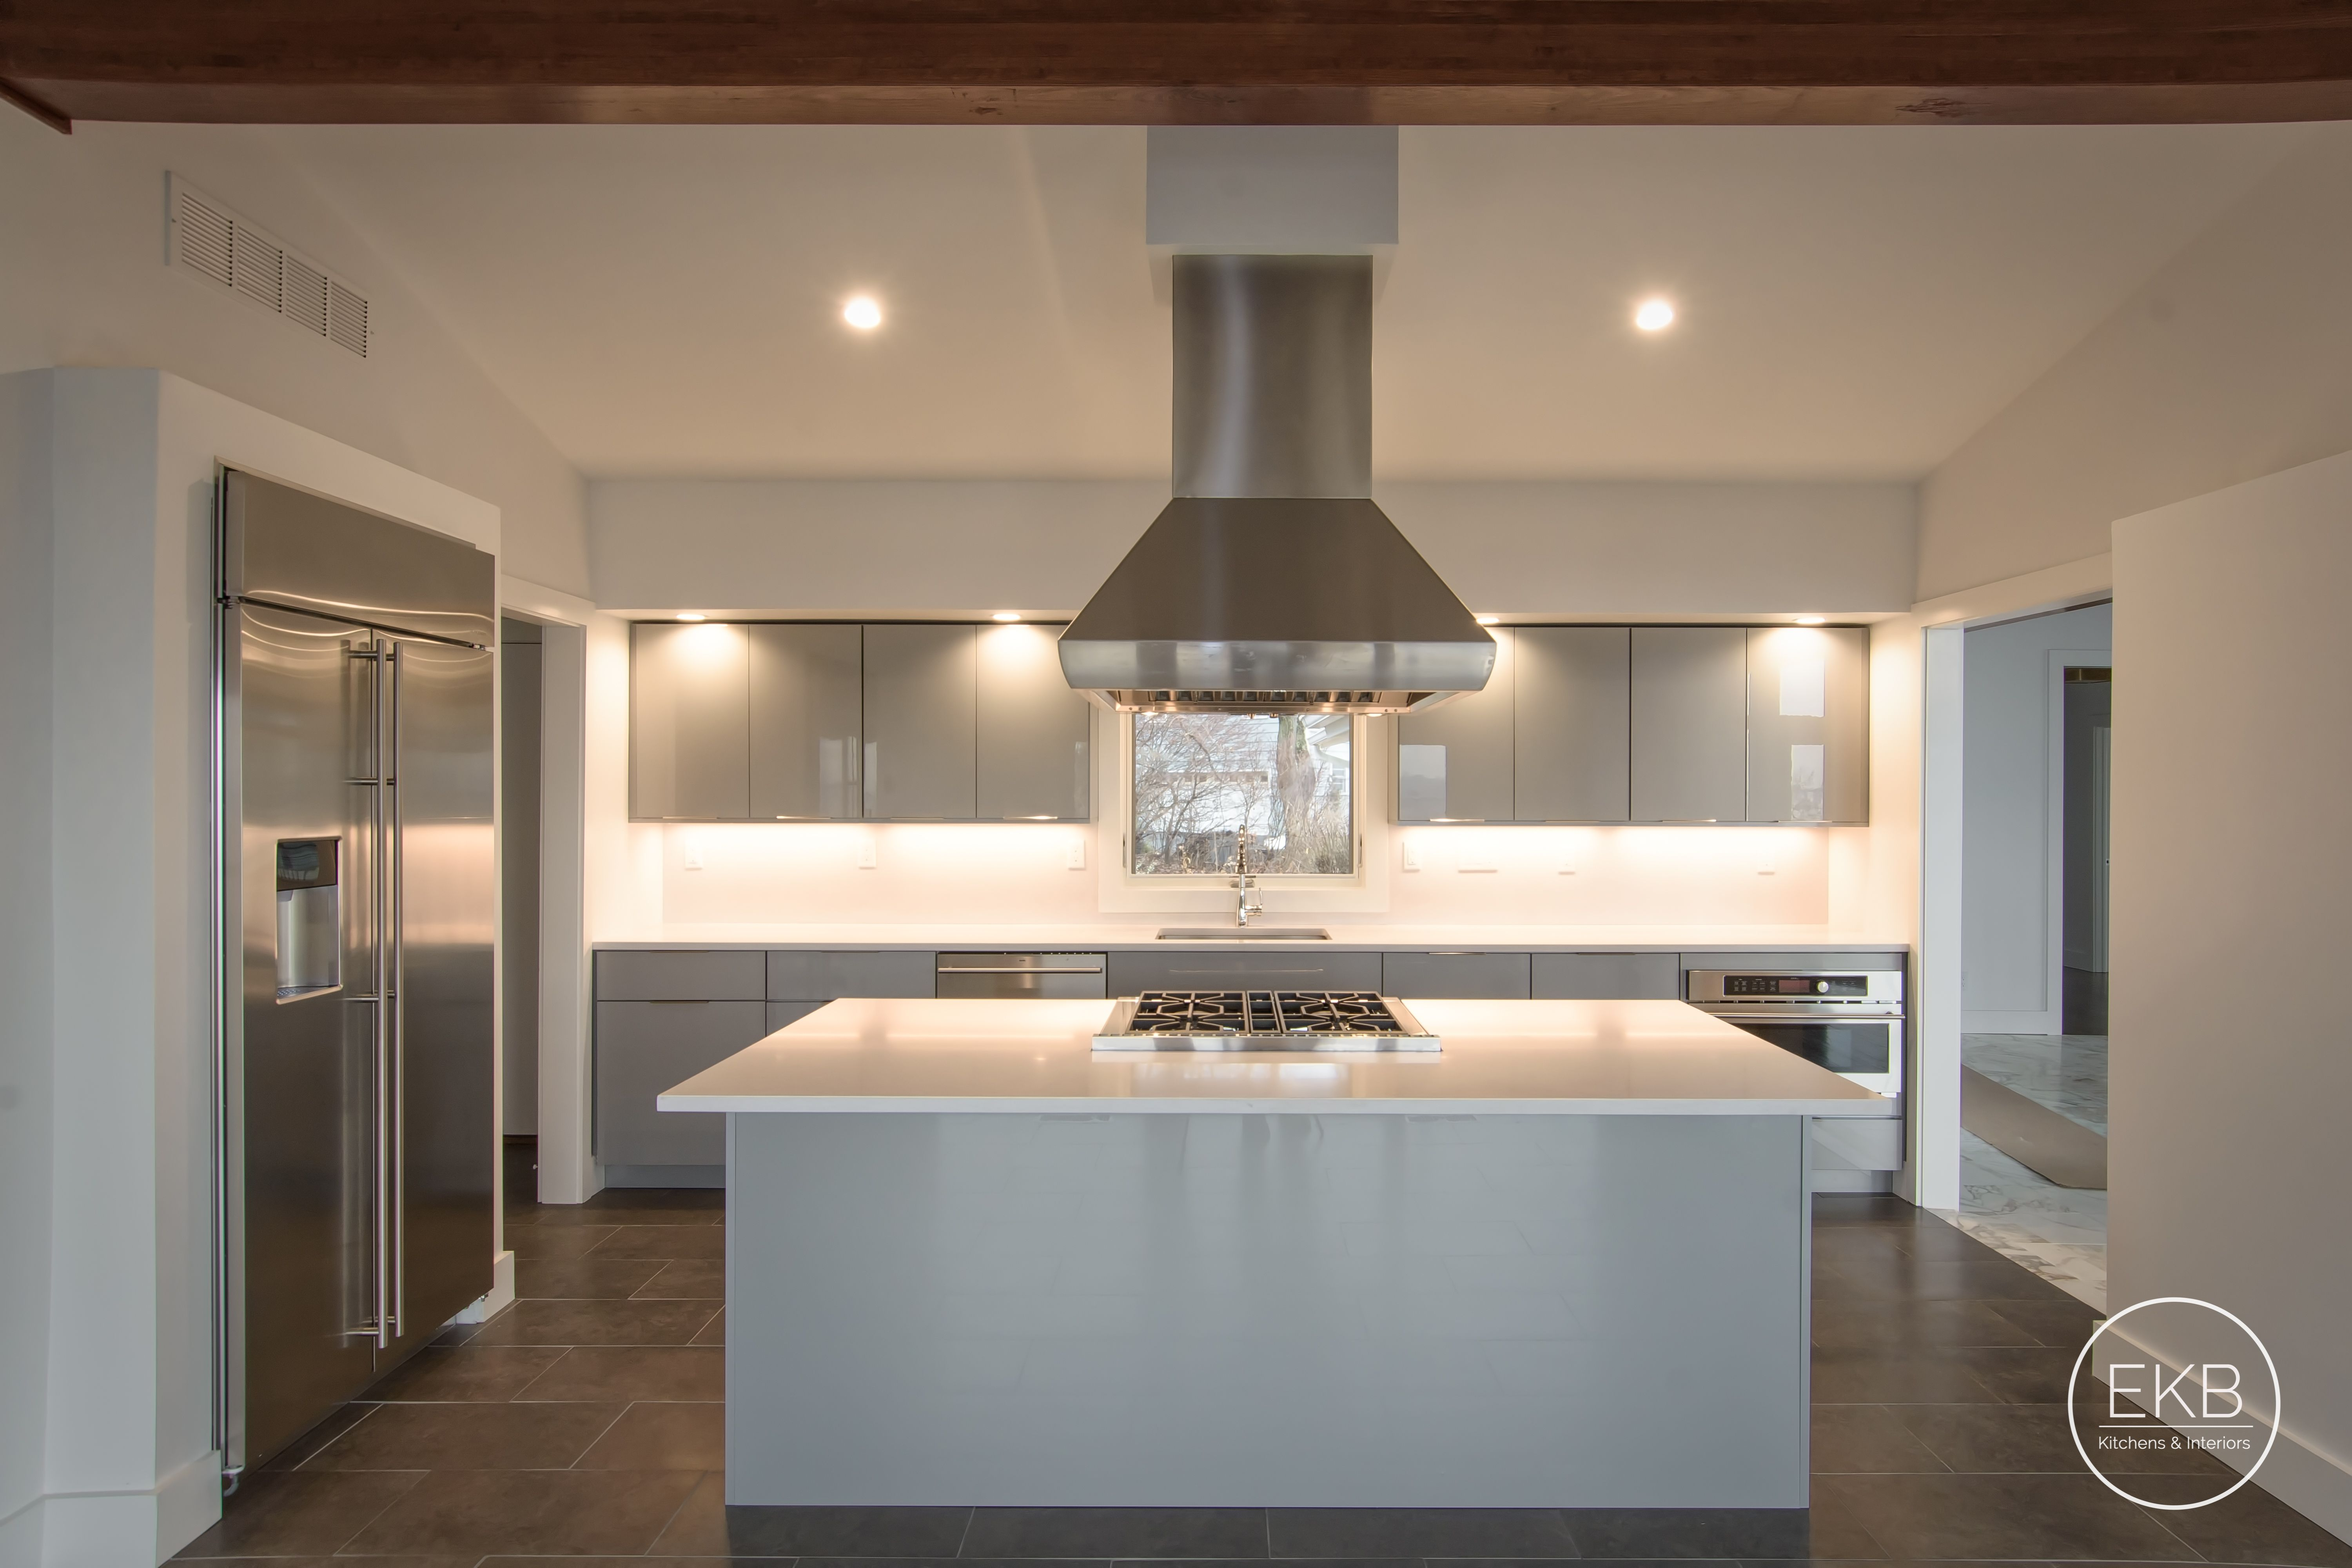 Eclipse Frameless Cabinetry Metropolitan Door Style In Gabbiano And White North Silestone Installing Kitchen Cabinets Kitchen Design Frameless Cabinetry